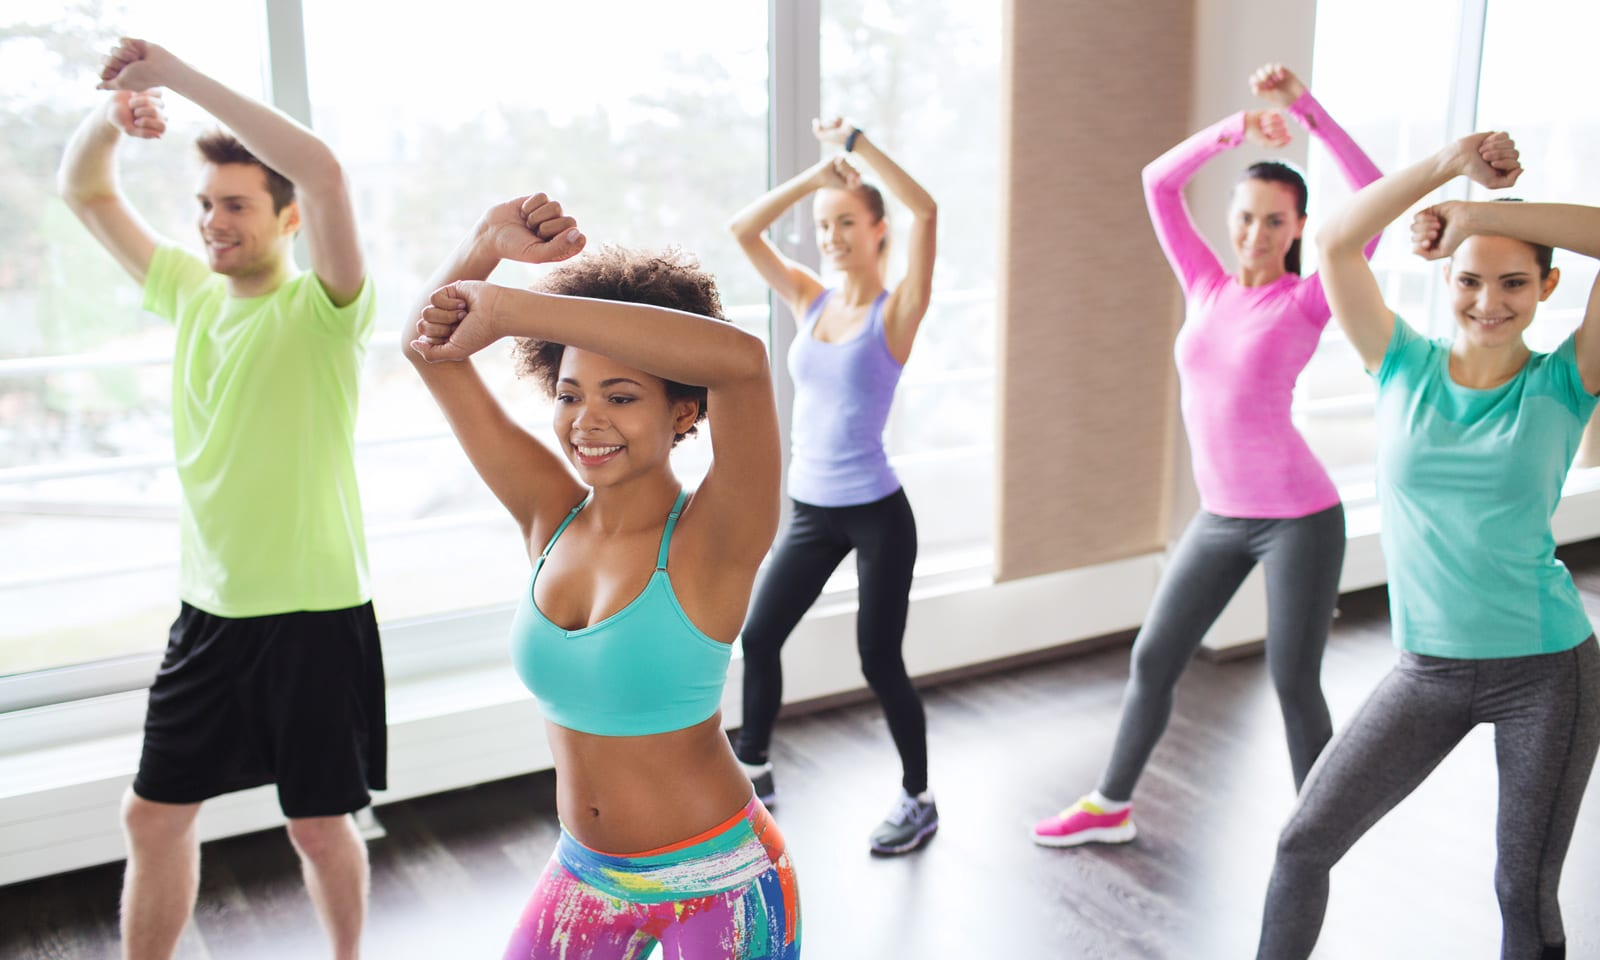 10 Best Shoes for Zumba [ 2020 Guide